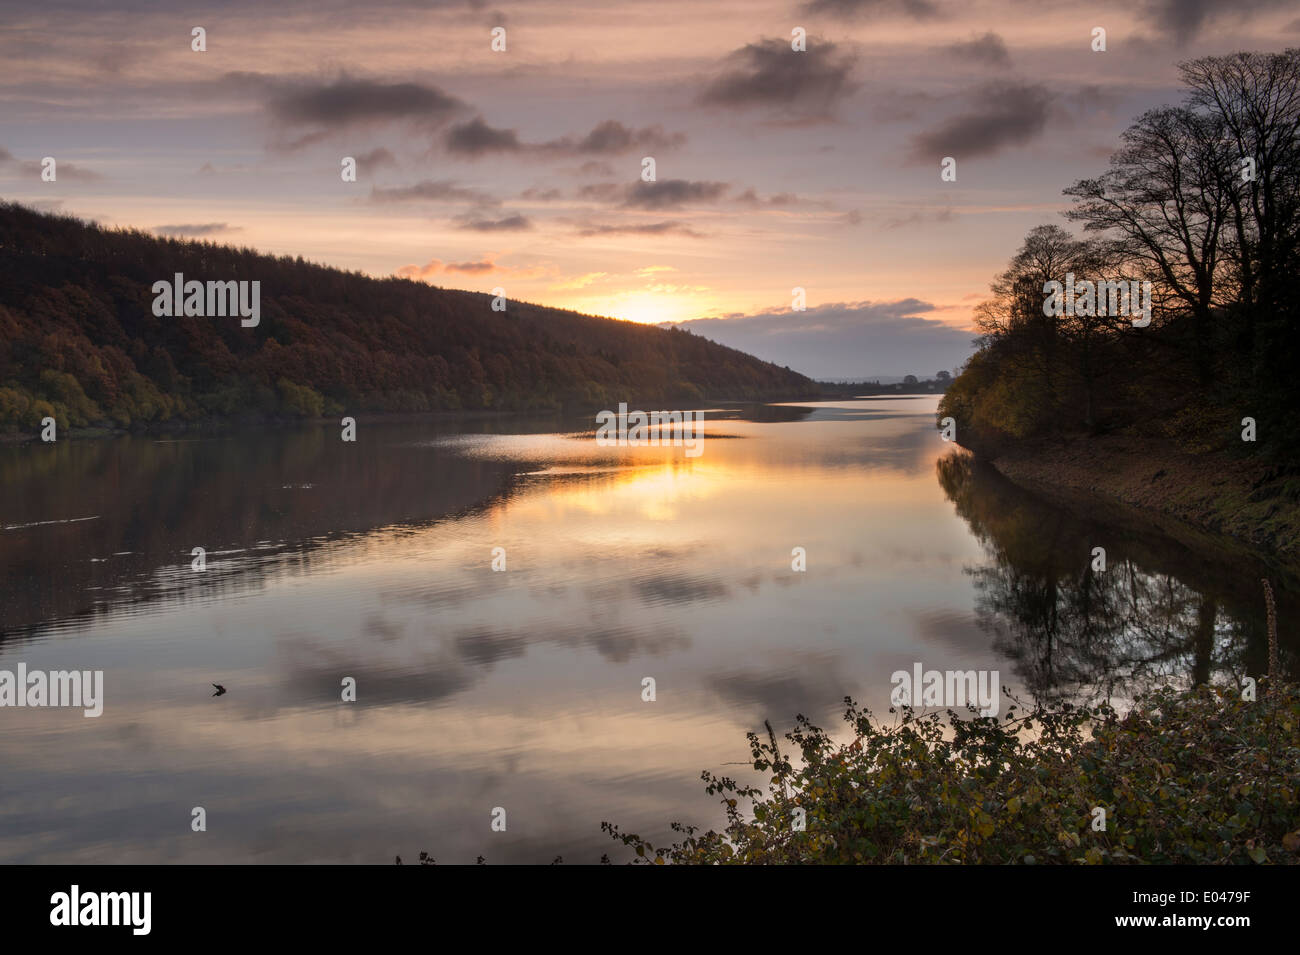 Beautiful scenic morning sunrise over still, calm water & woodland at rural, deserted Lindley Wood Reservoir, Washburn Valley, North Yorkshire, GB. - Stock Image